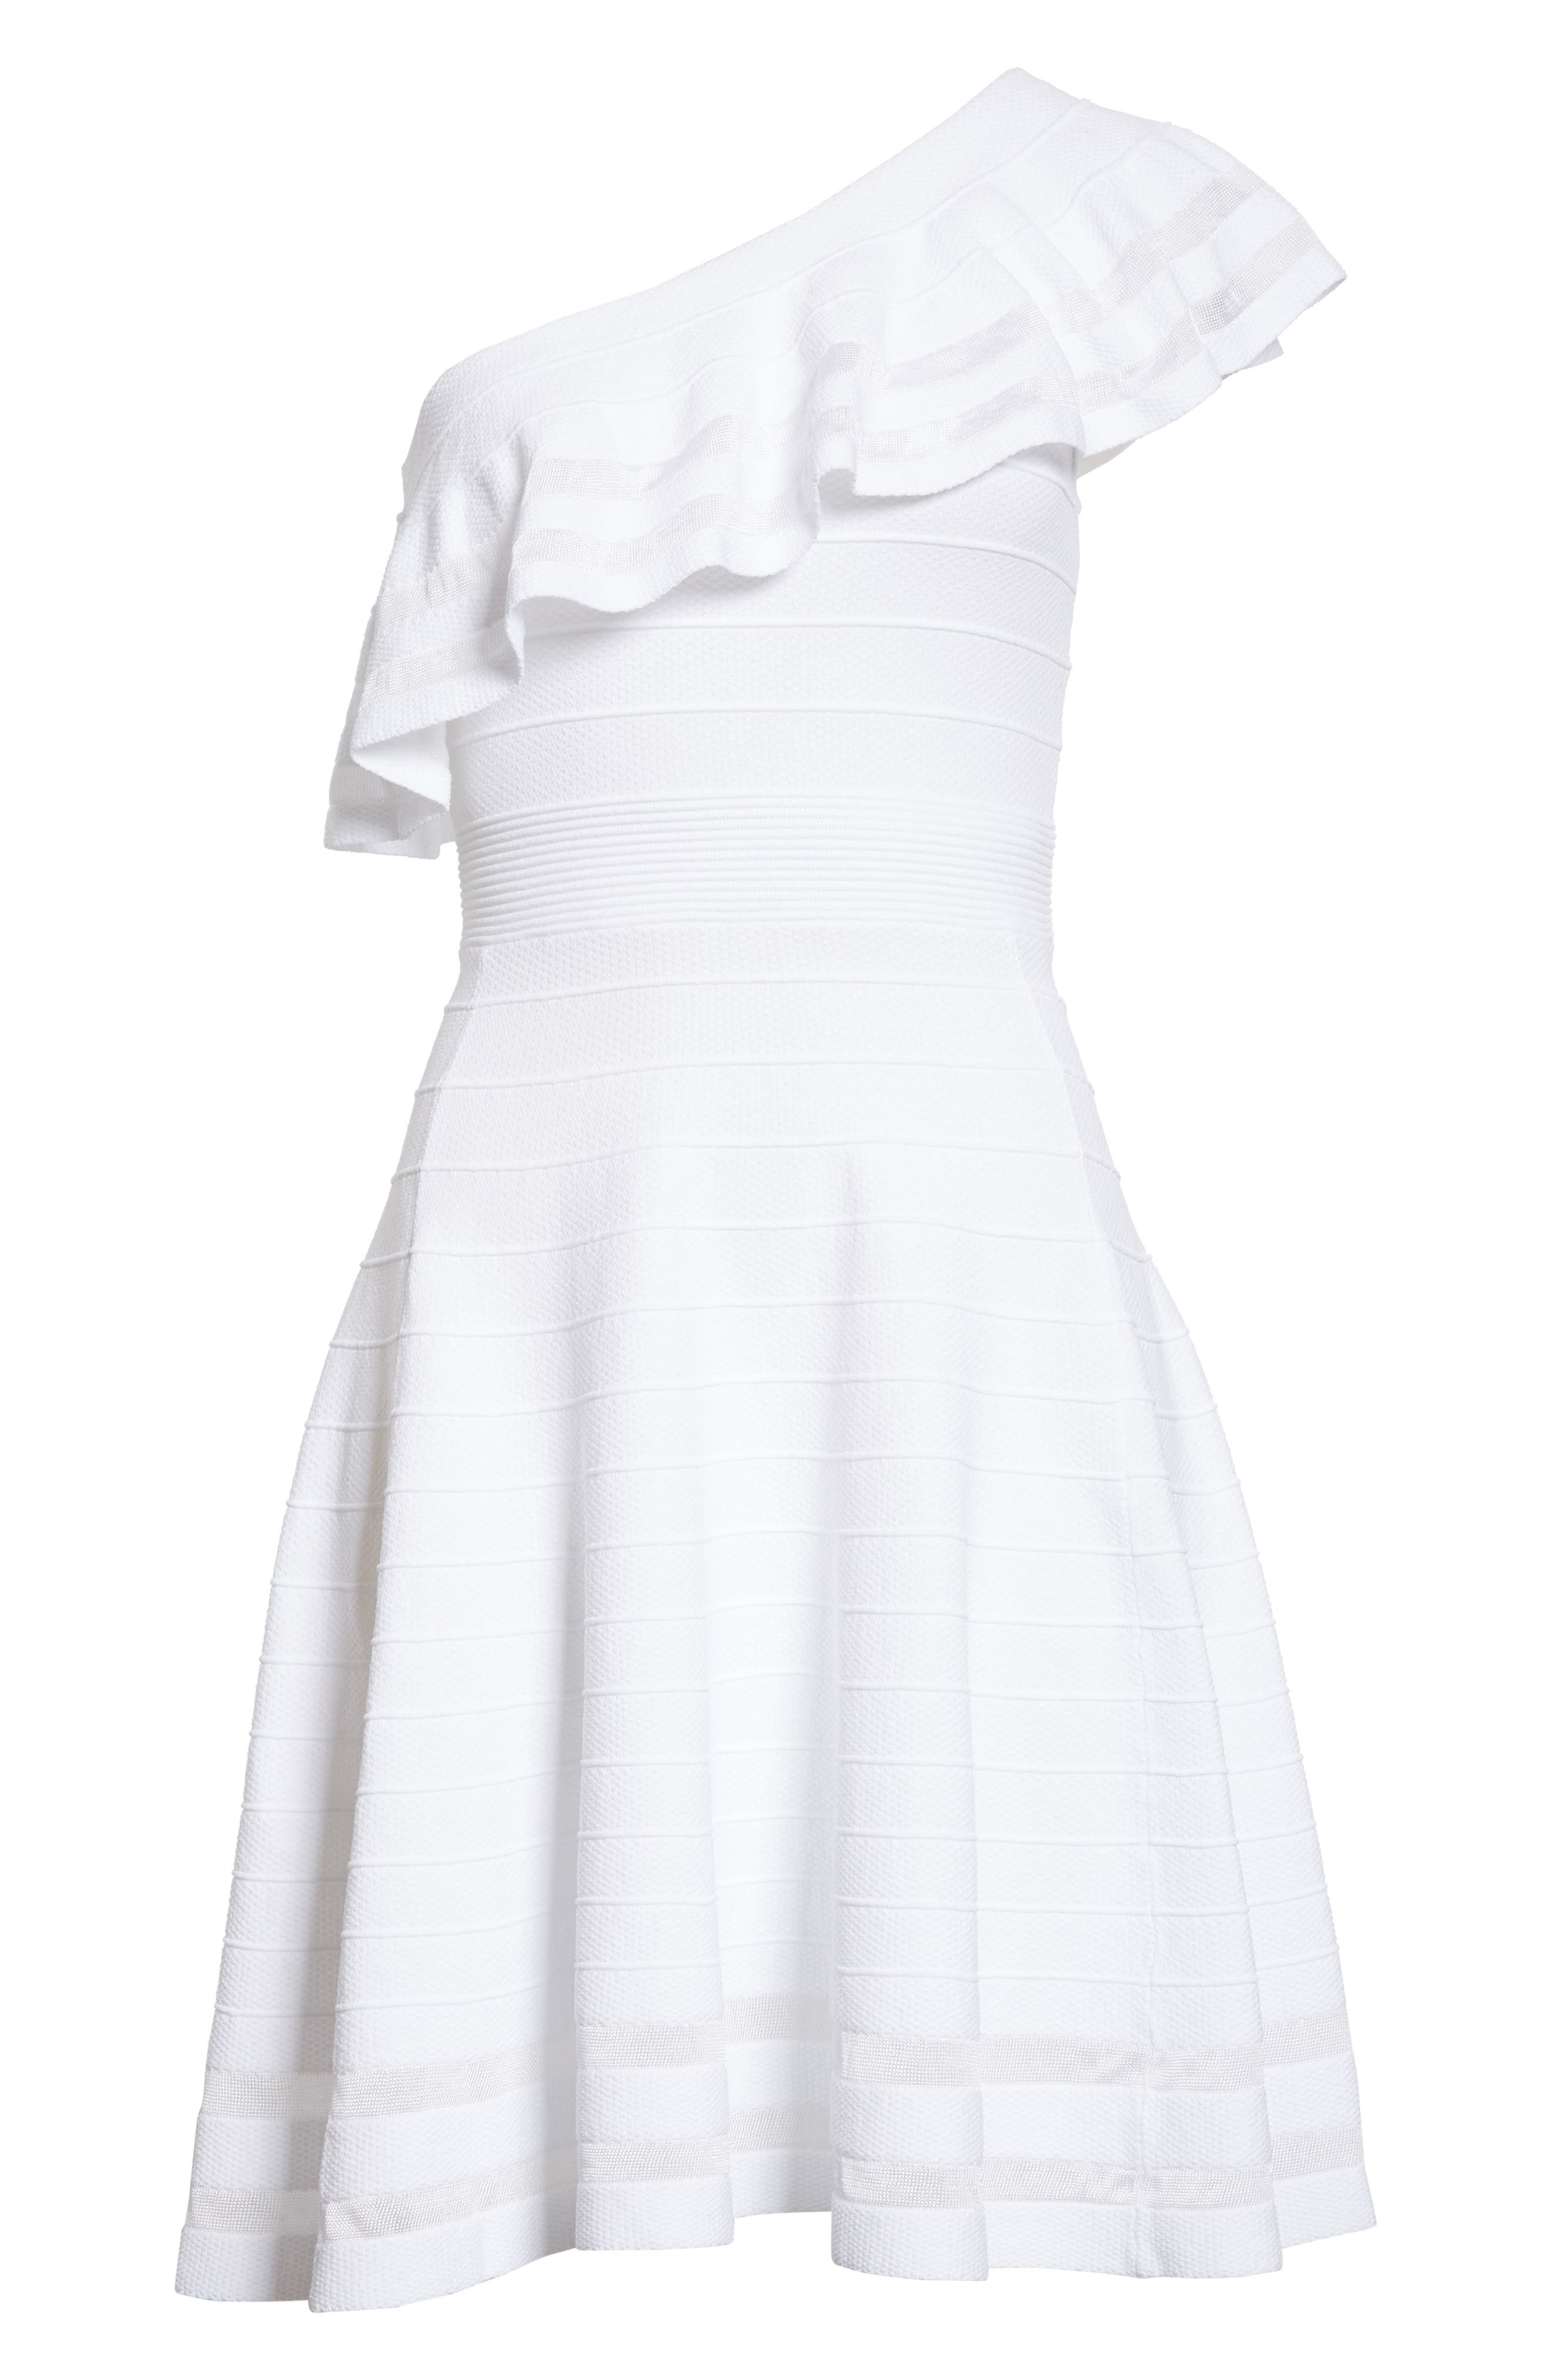 Streena Knit Skater Dress,                             Alternate thumbnail 6, color,                             White